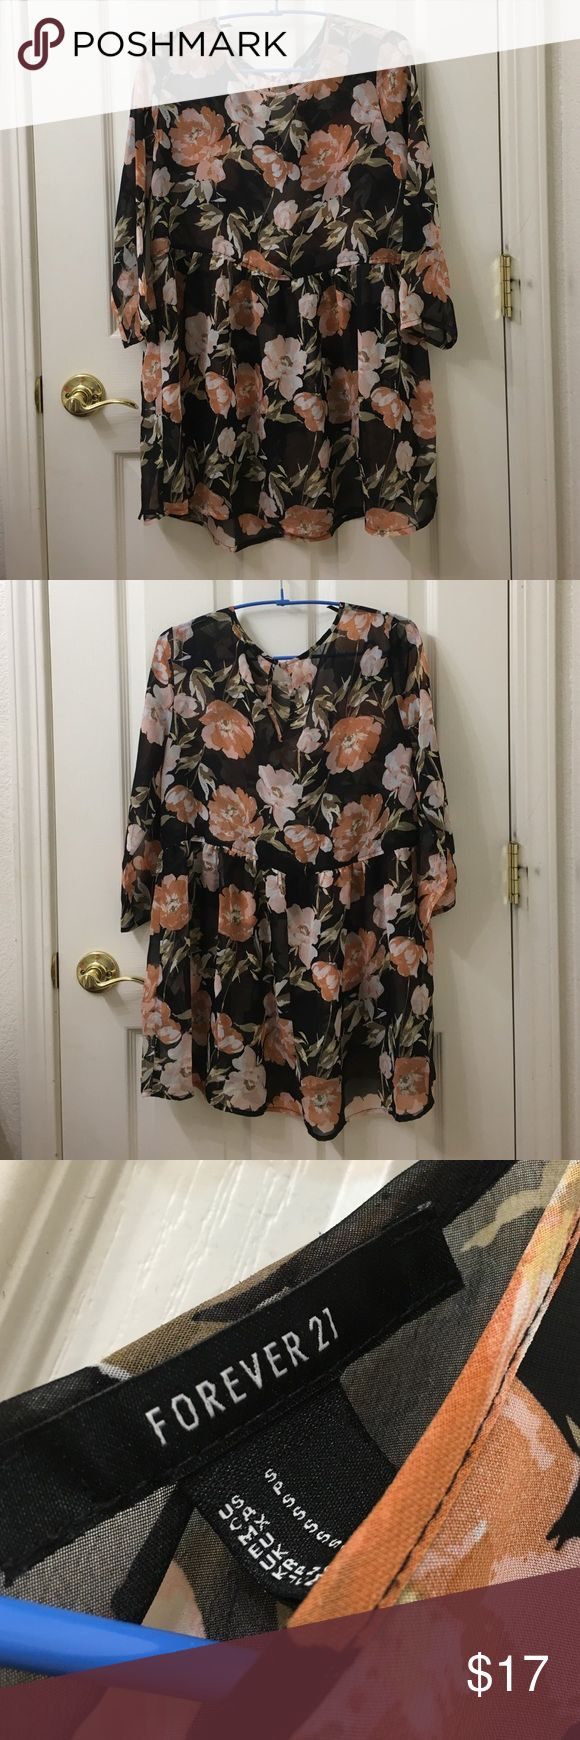 Floral Sundress see through sundress with peach colored floral design. worn twice. Forever 21 Dresses Mini